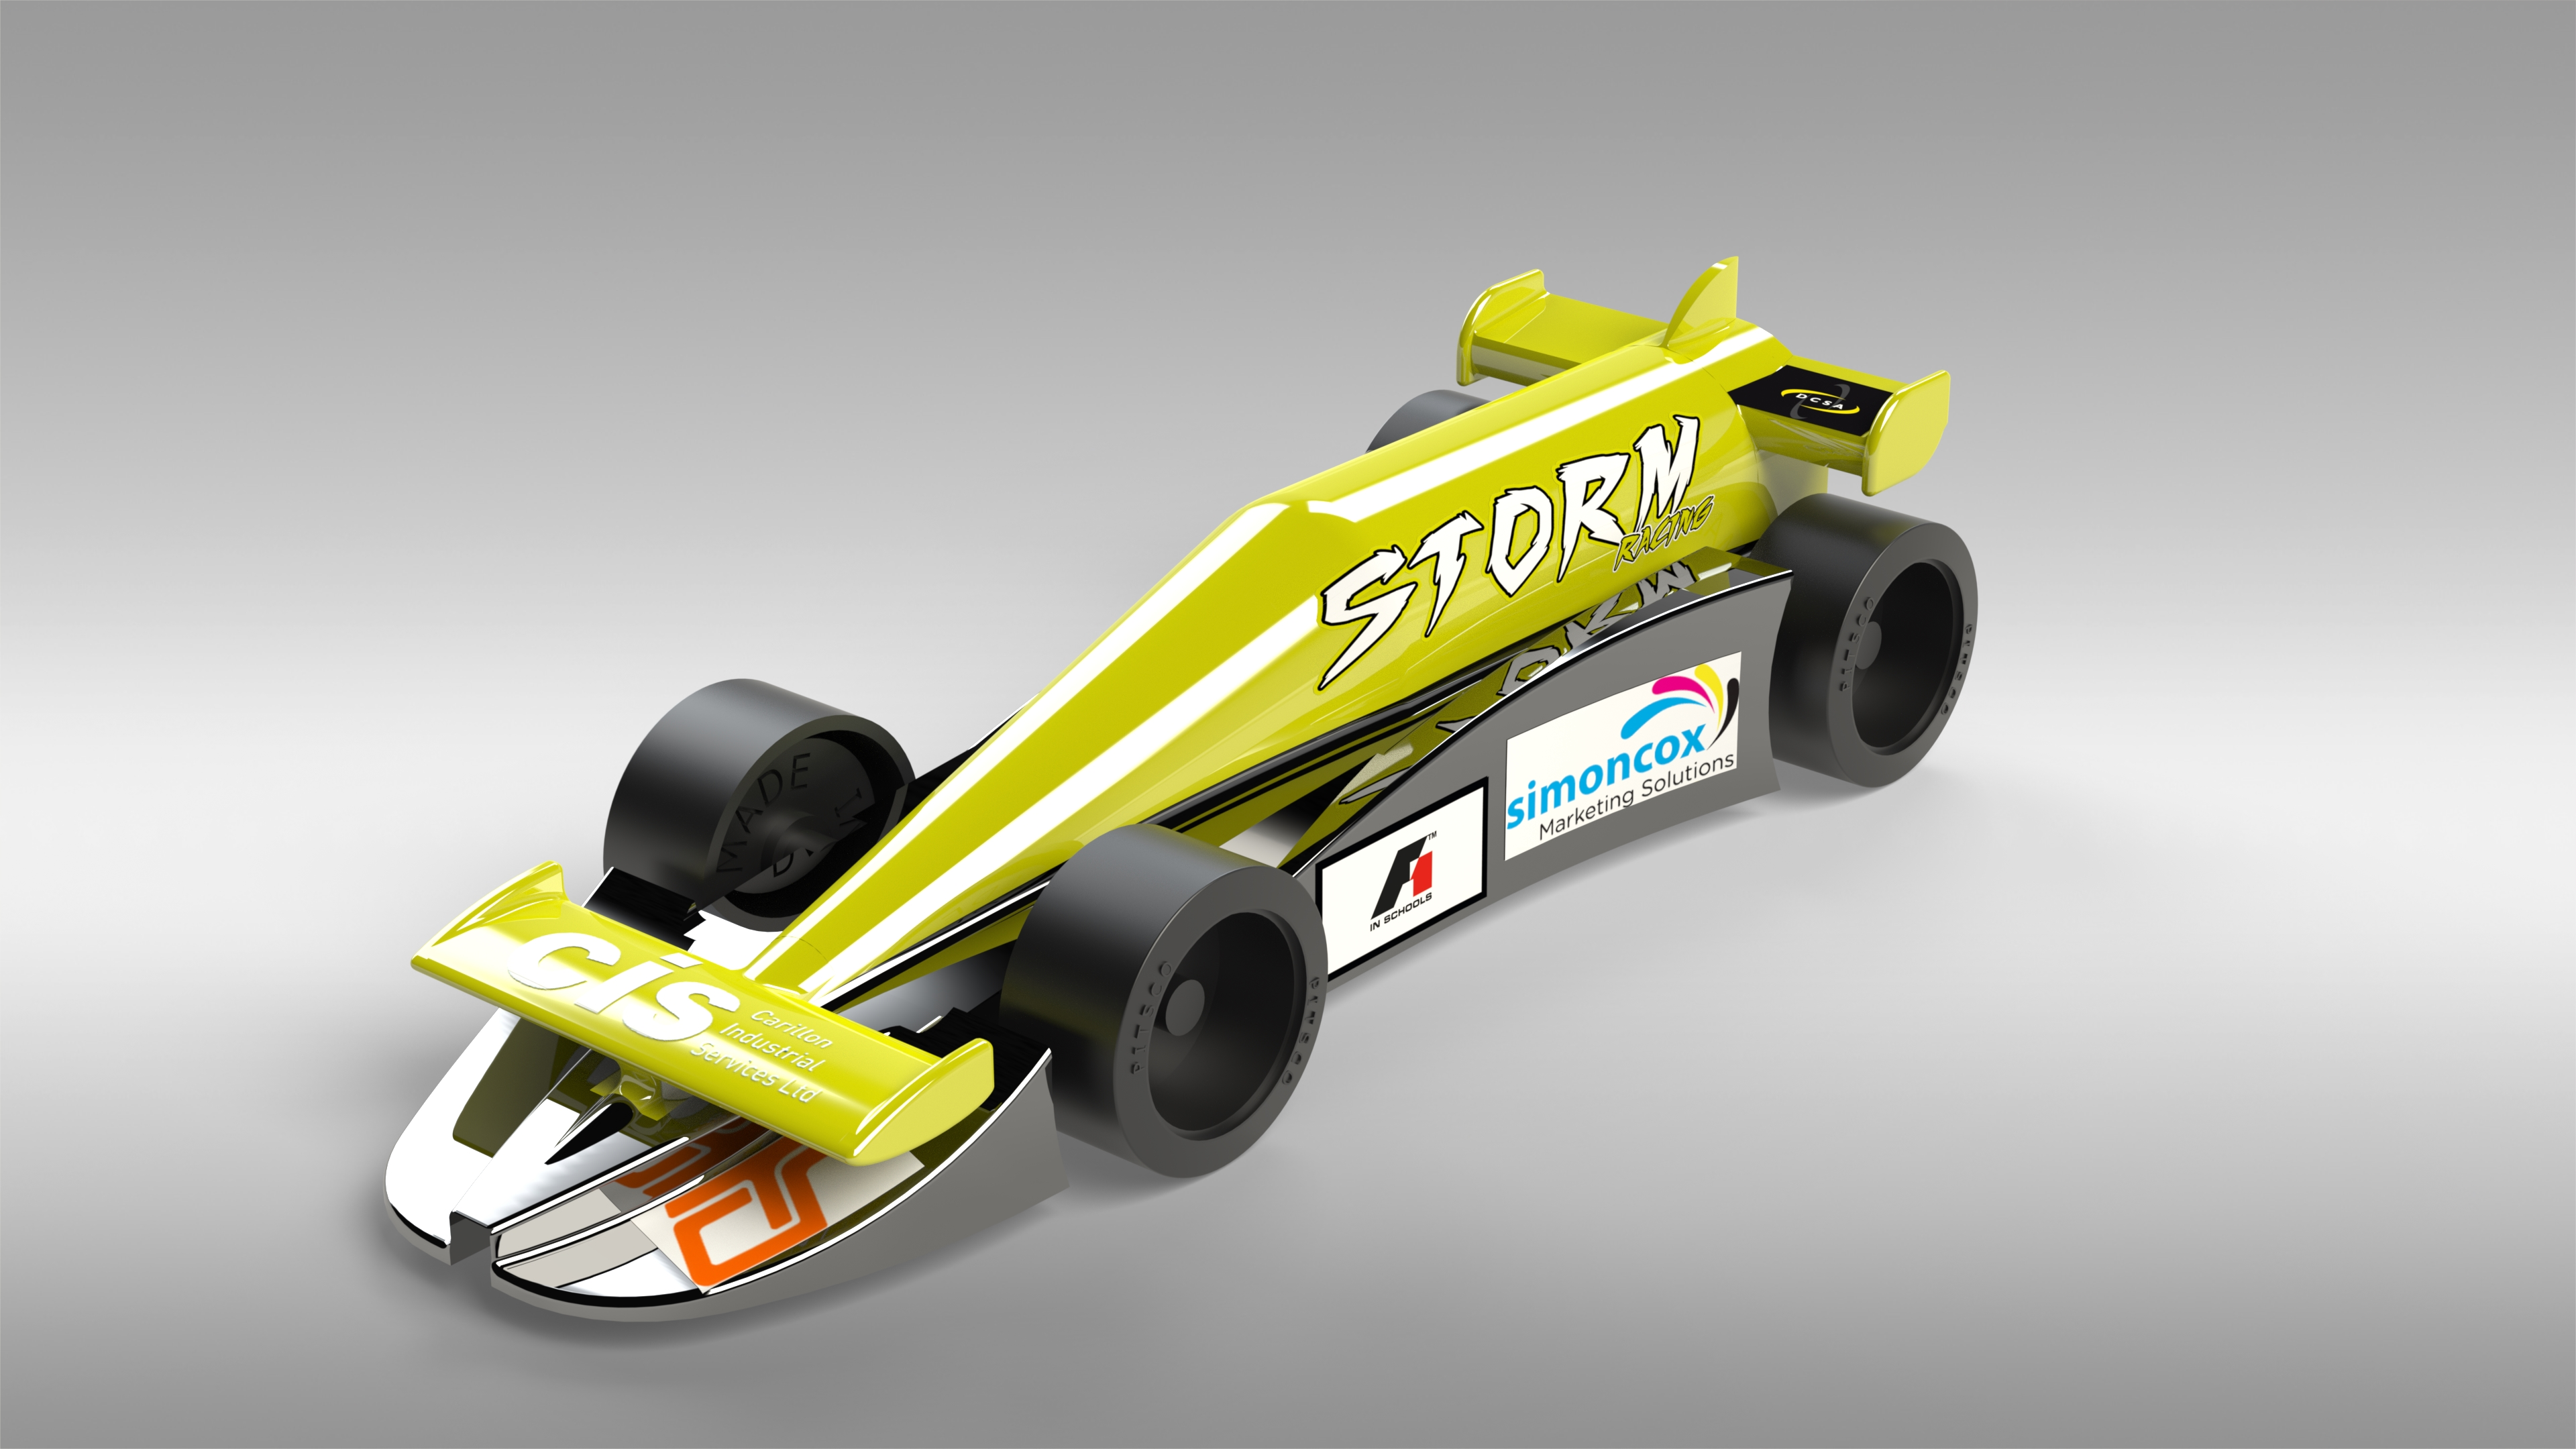 Cis Support Storm Racing In F1 In Schools Via Our Ppc Facility Winners Of Their Region Now In National Finals Cis Tools